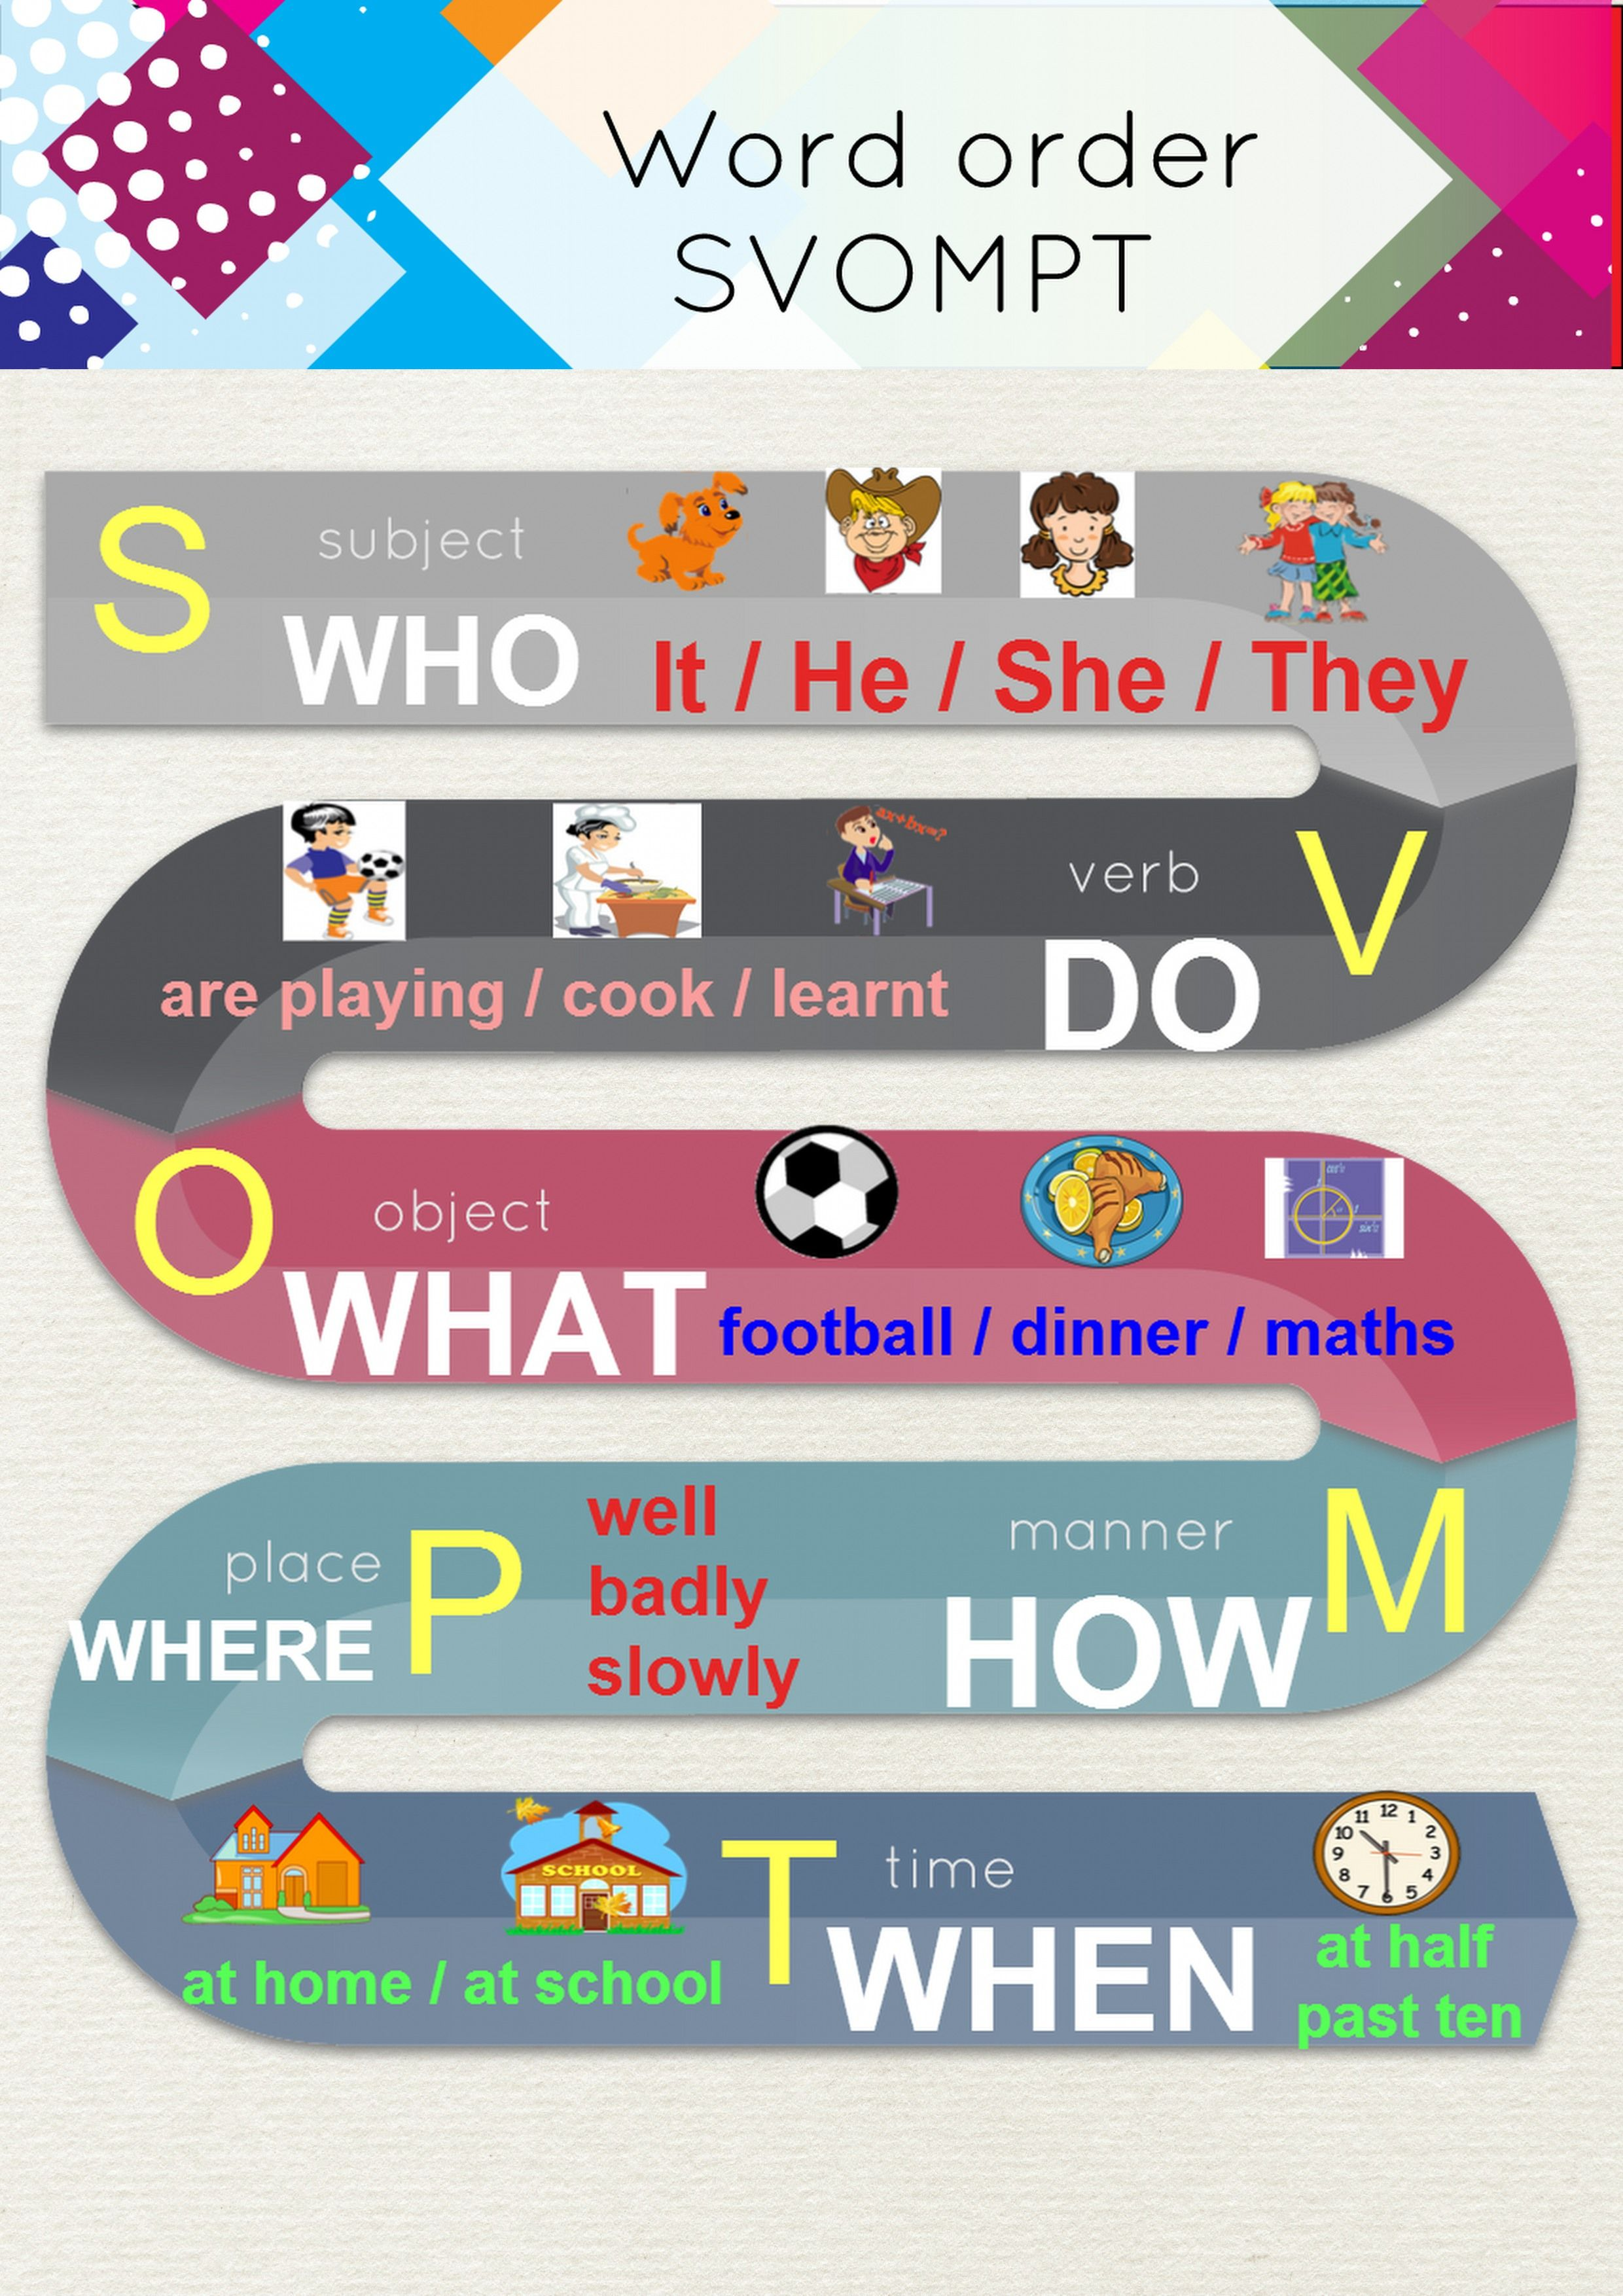 Svompt Word Order In English